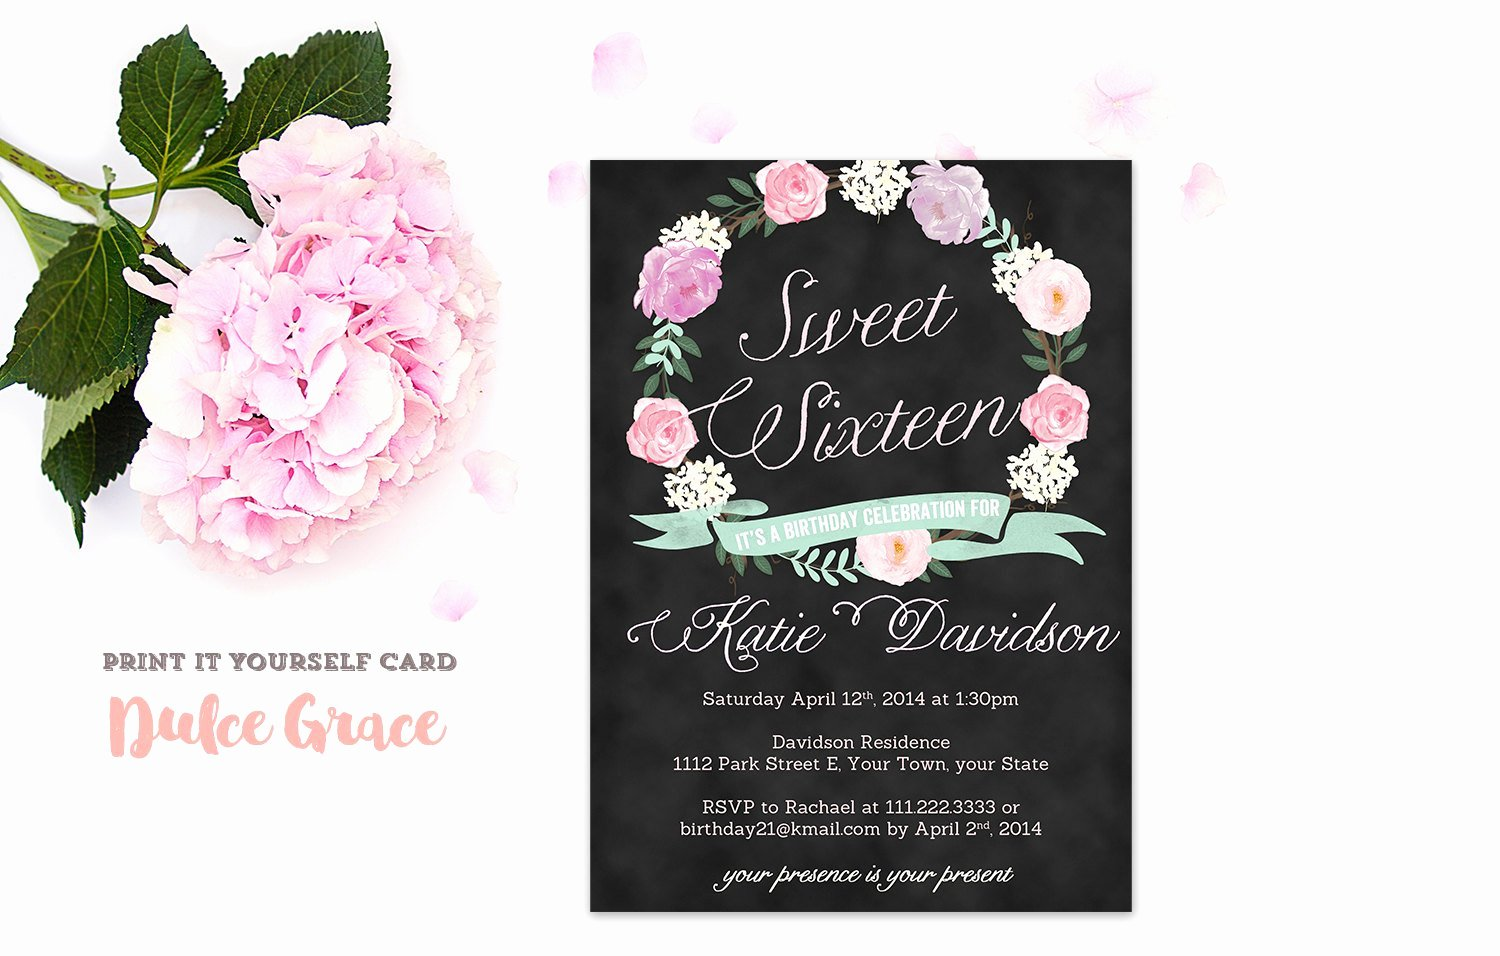 Sweet Sixteen Invitation Template Awesome Sweet Sixteen Invitations Sweet 16 Invitation Printable